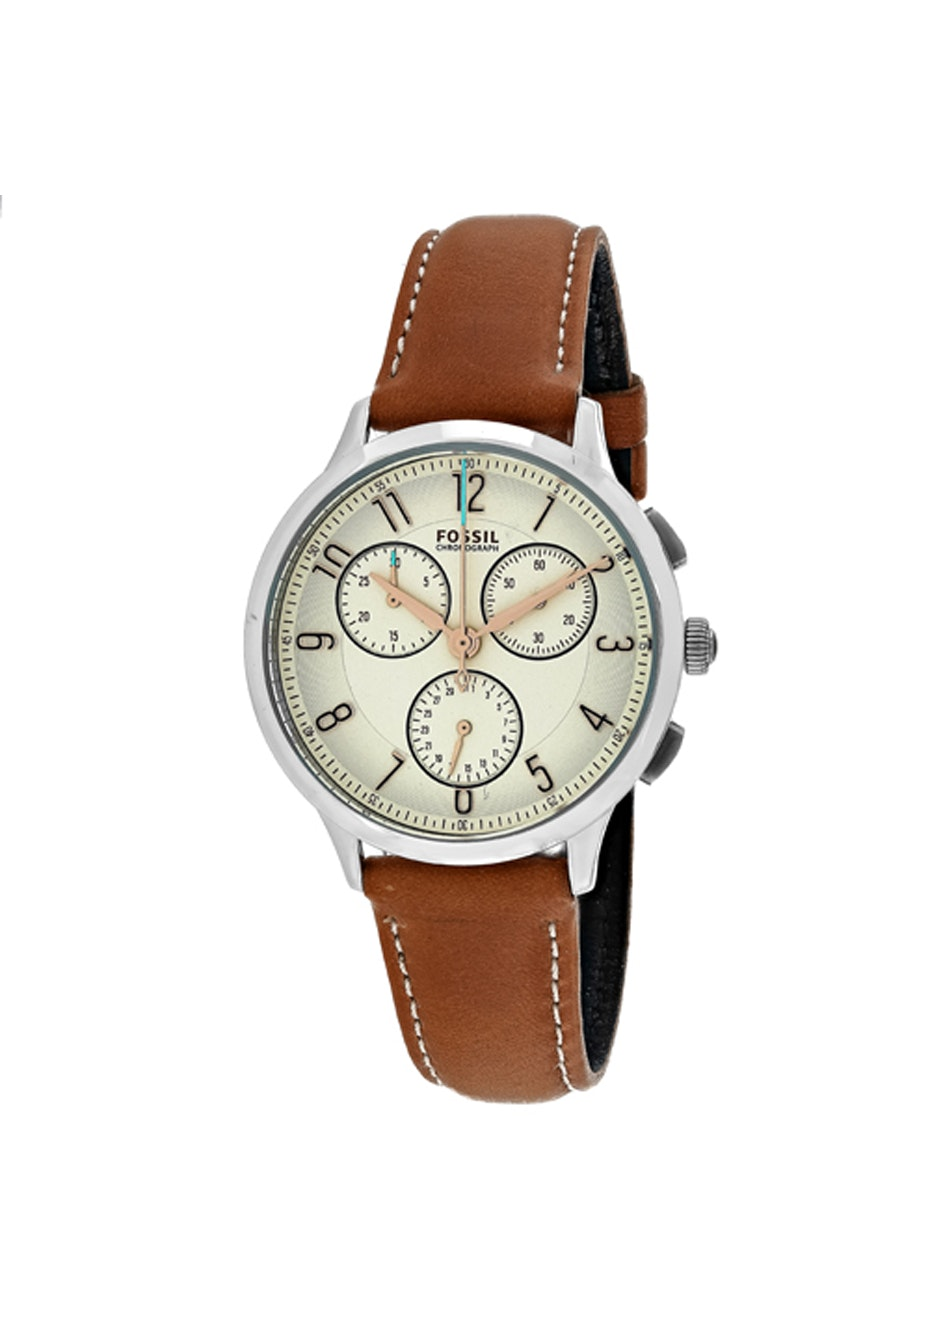 Fossil Women's Abilene - Silver/Brown